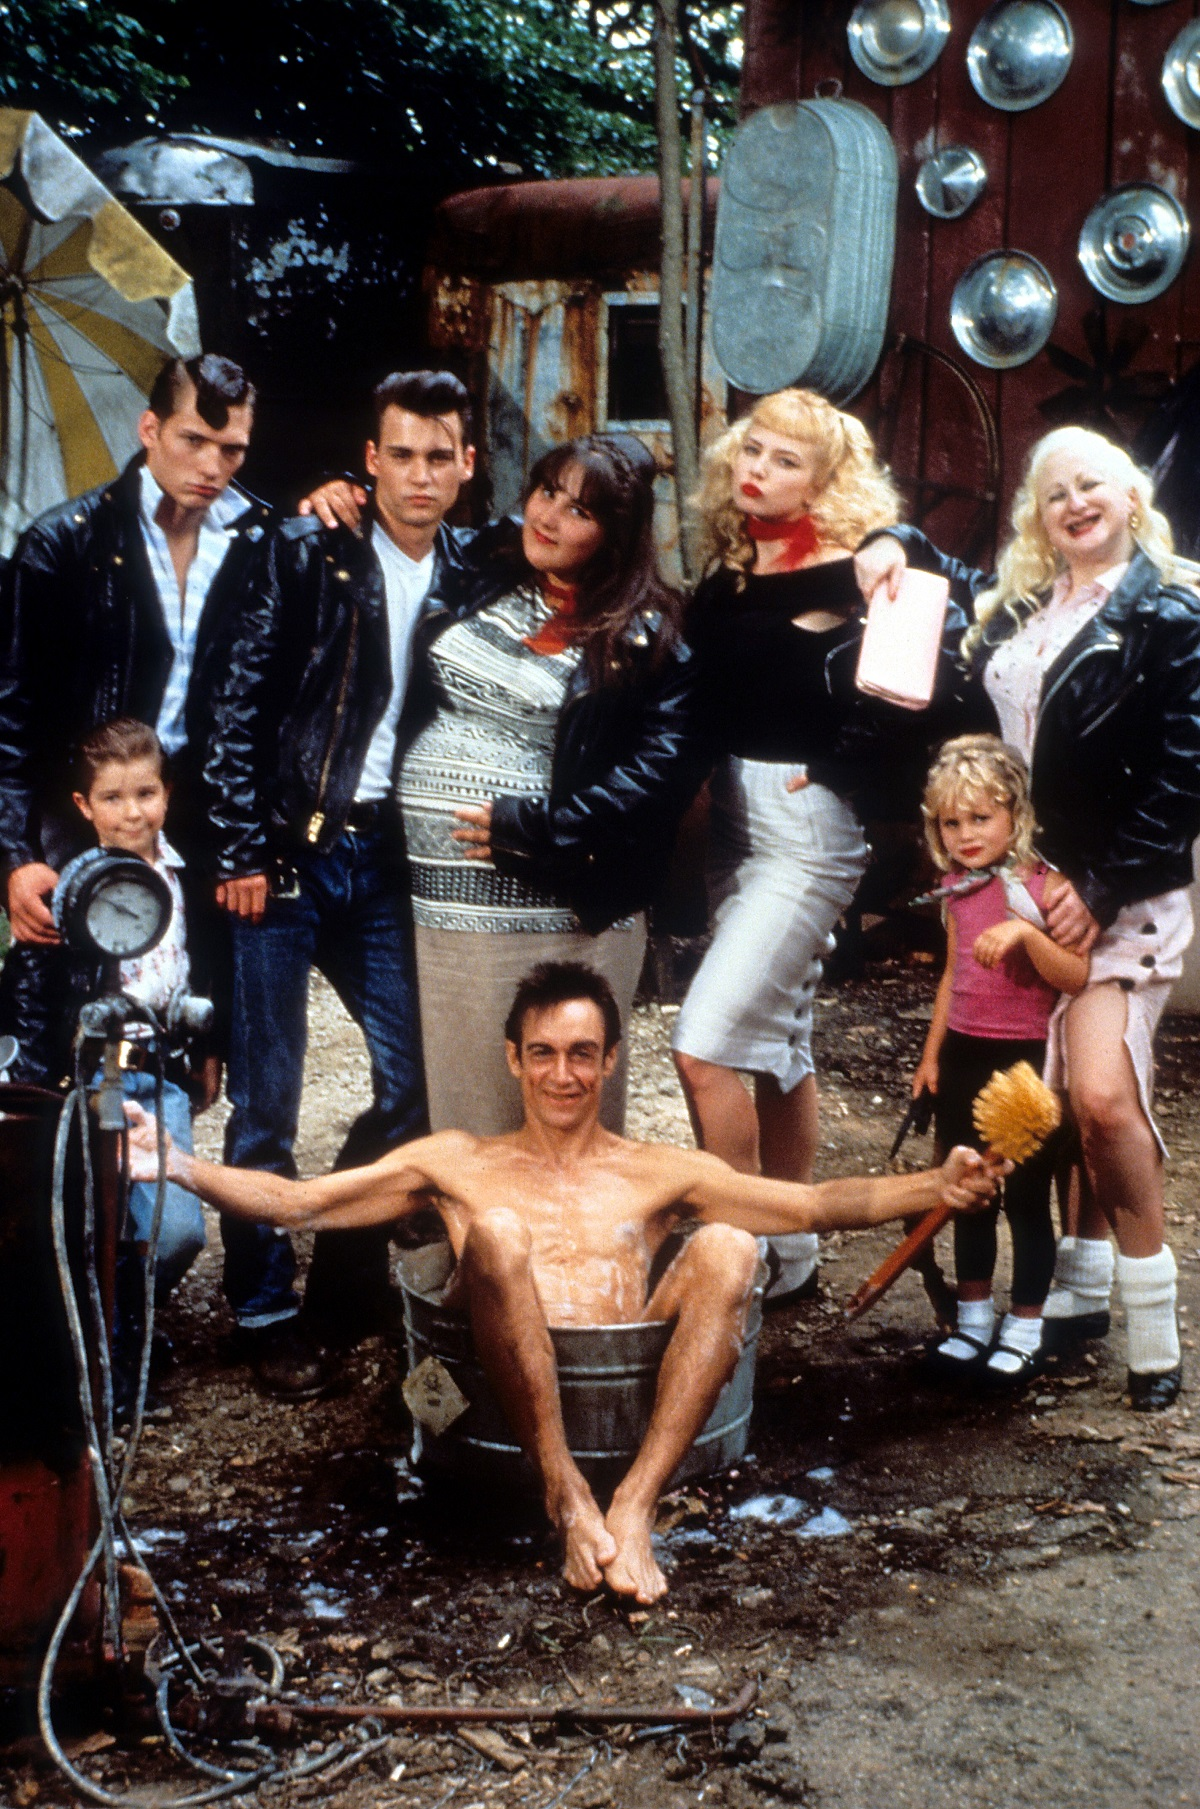 Johnny Depp, Traci Lords, Ricki Lake, and the rest of the cast of 'Cry-Baby'